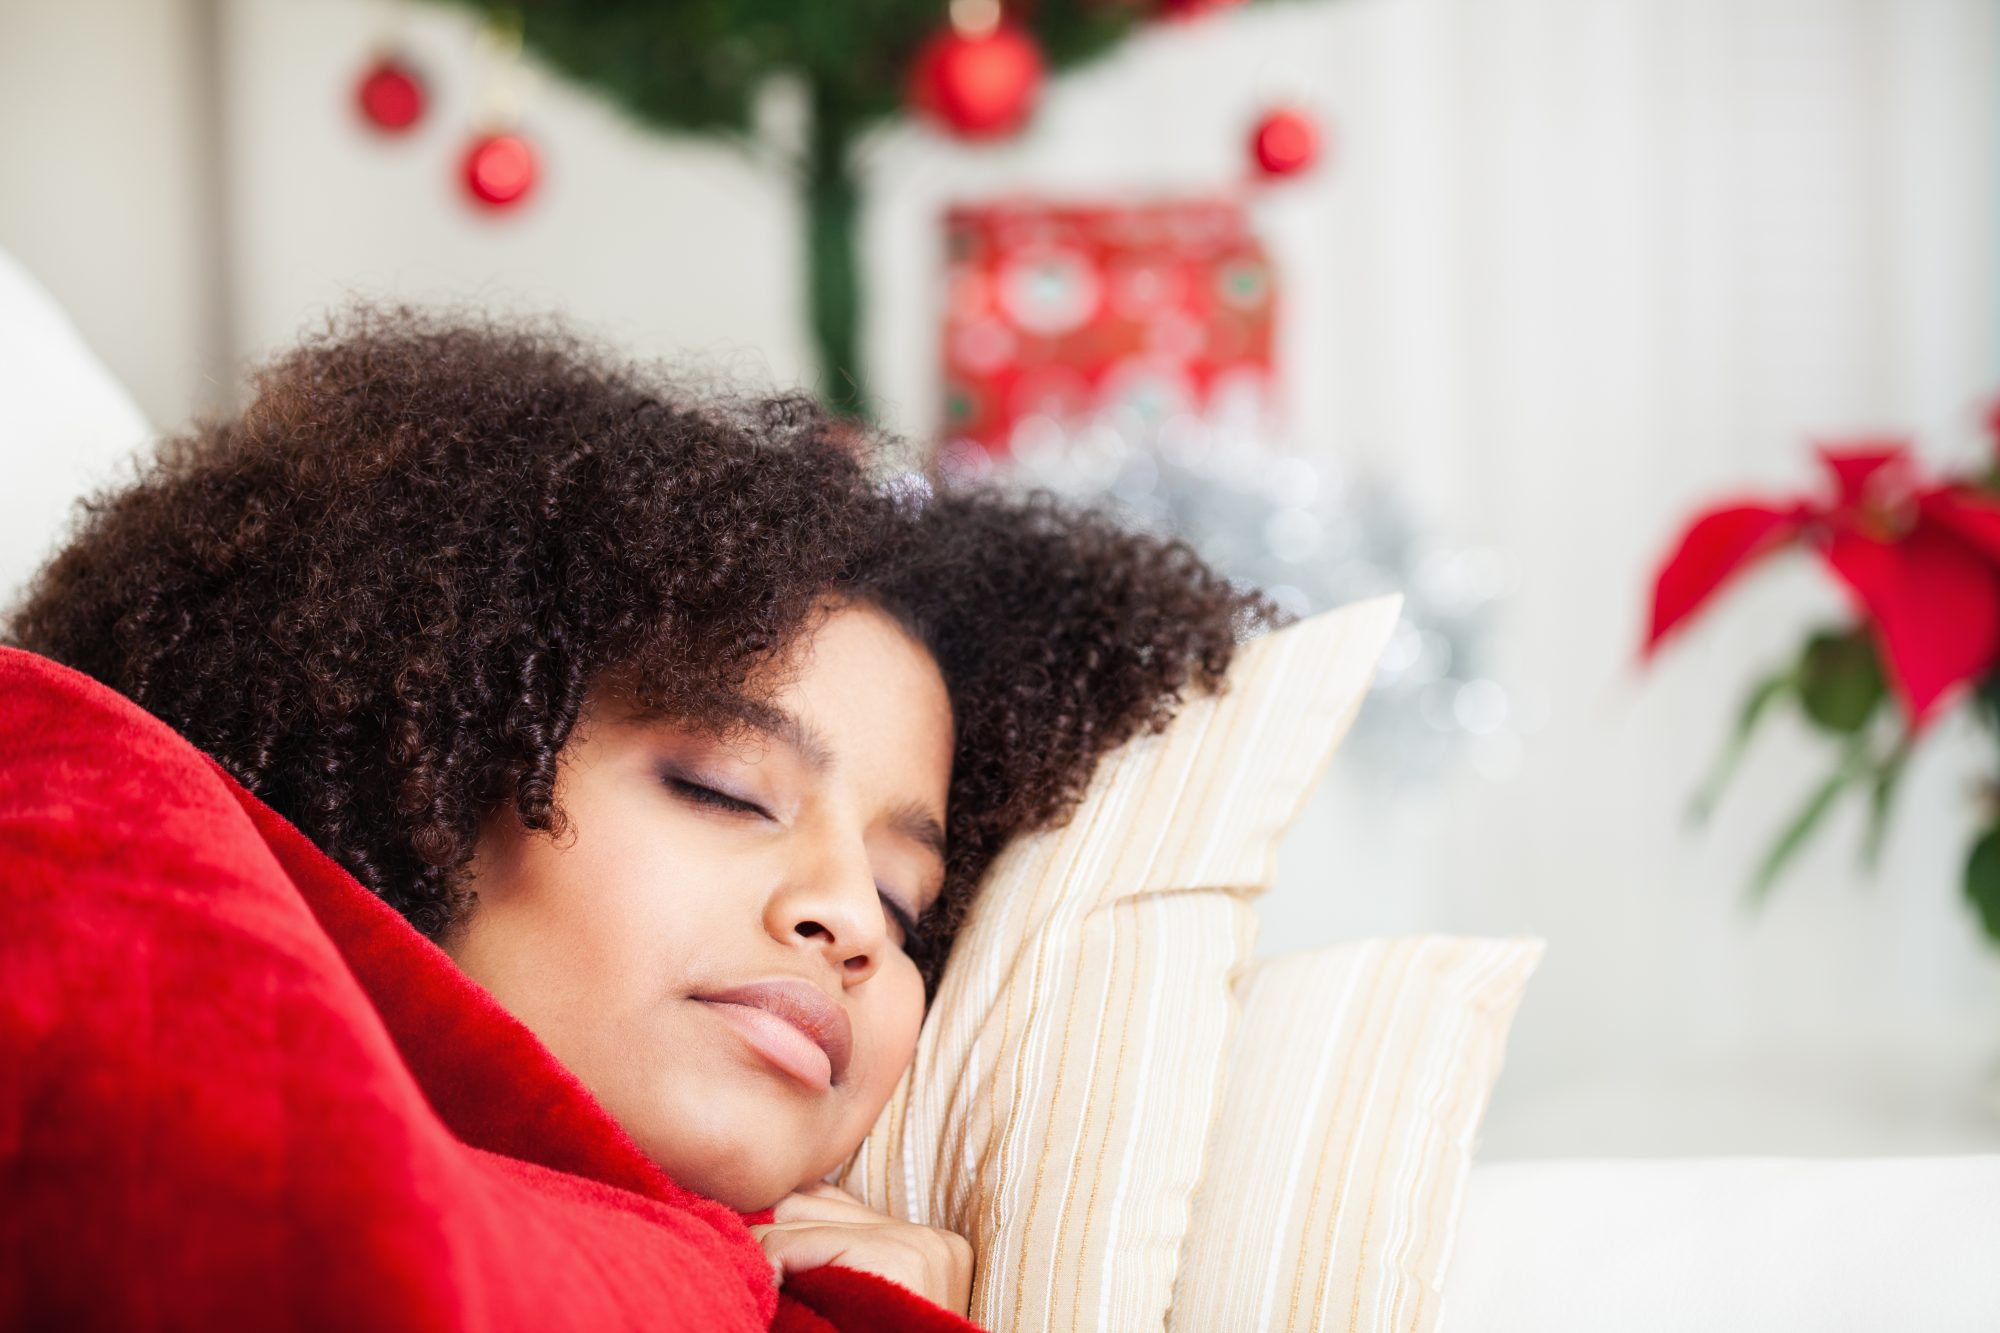 Sleeping Pills and Holiday Habits: What You Need to Know